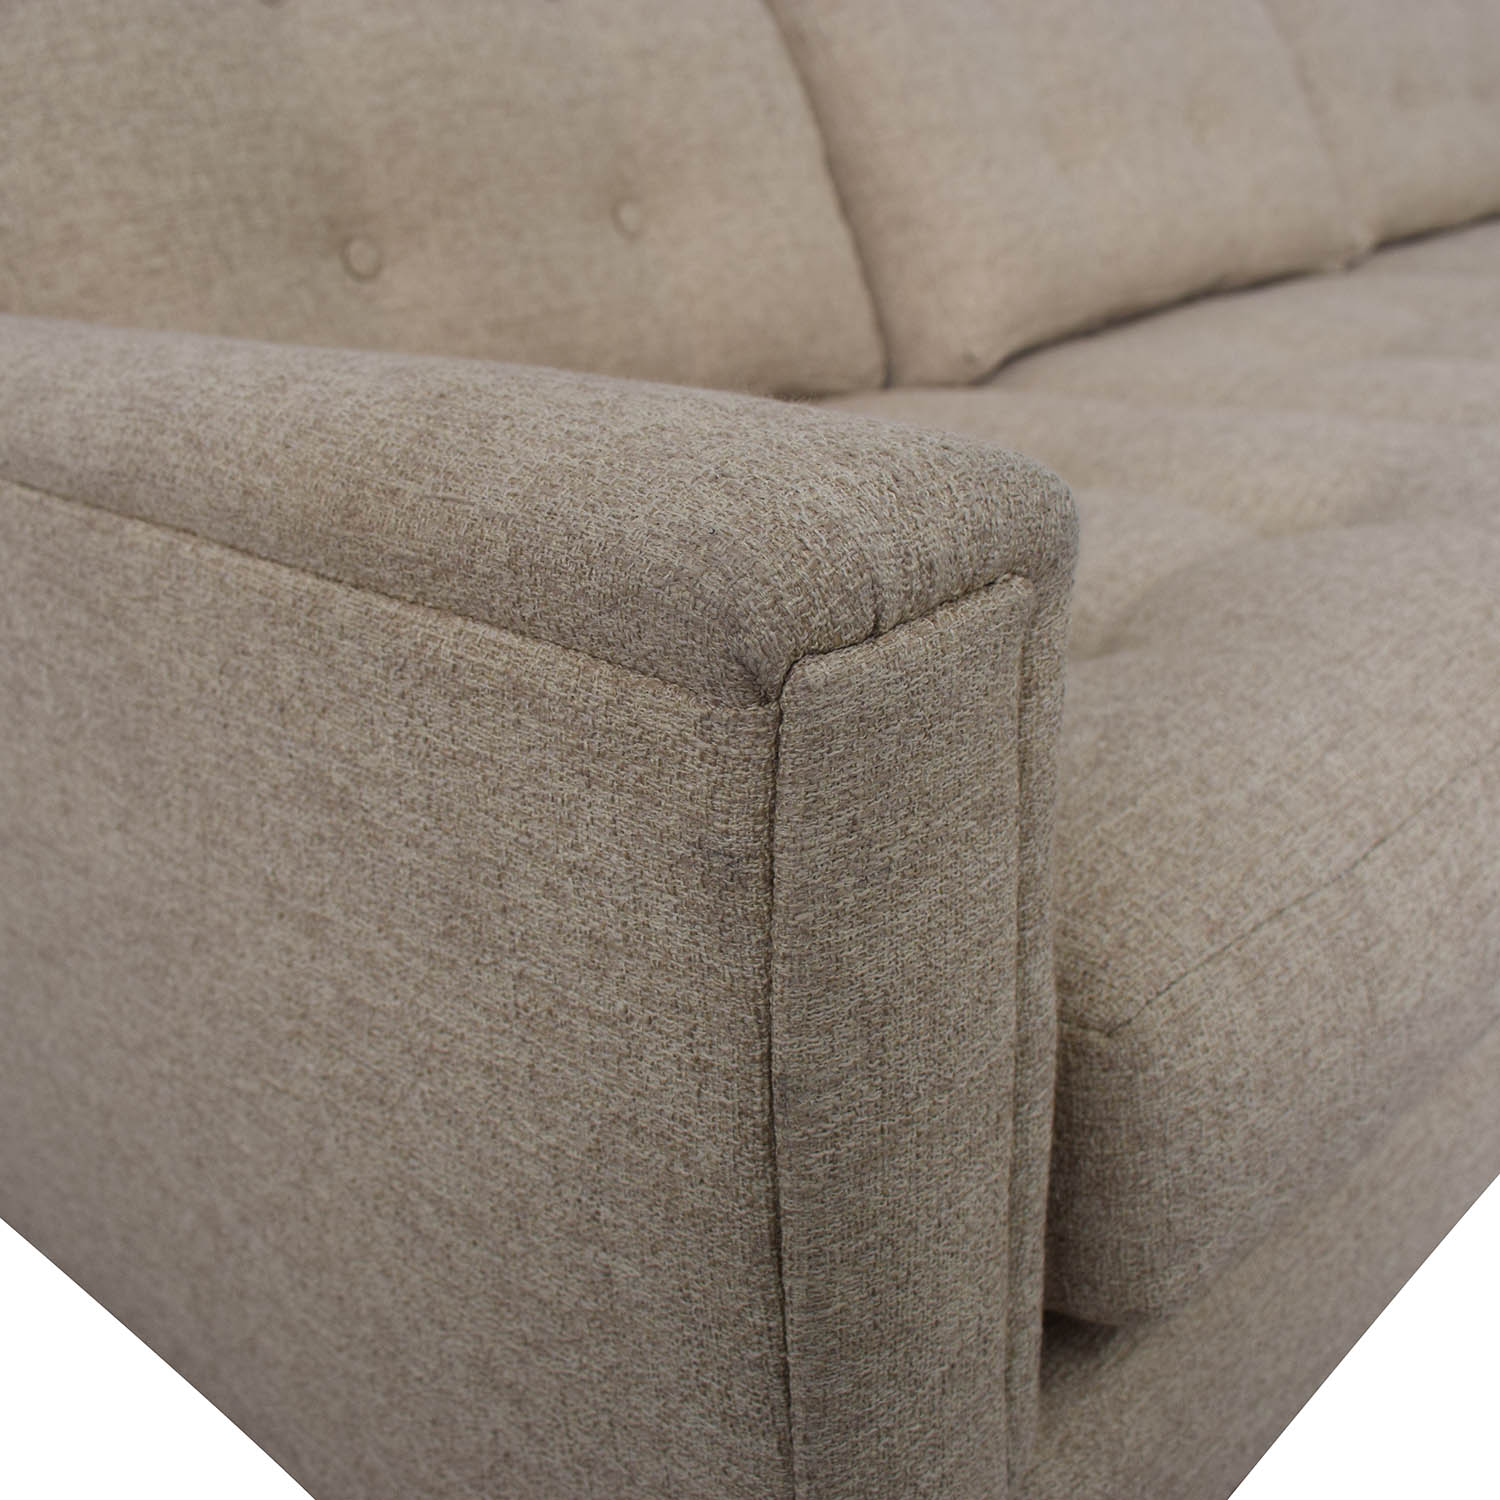 Rowe Furniture Rowe Furniture Beige Three Cushion Sofa nj